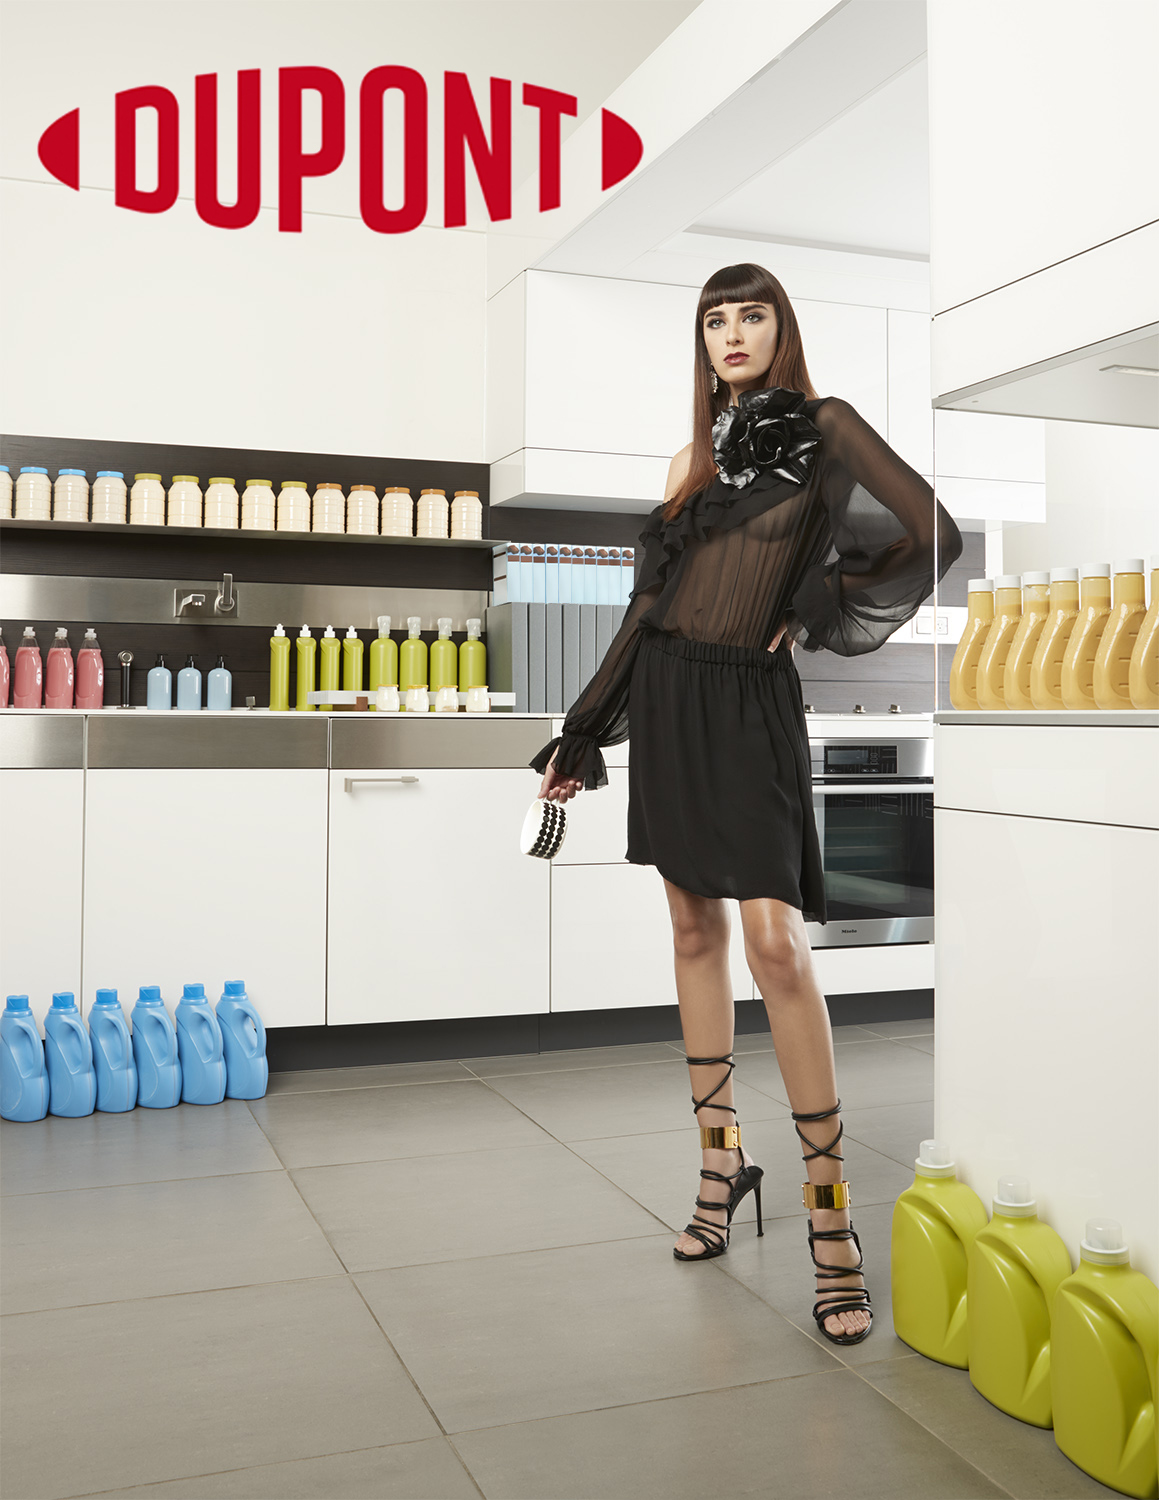 stan_musilek_commercial_photography_advertising_dupont.jpg